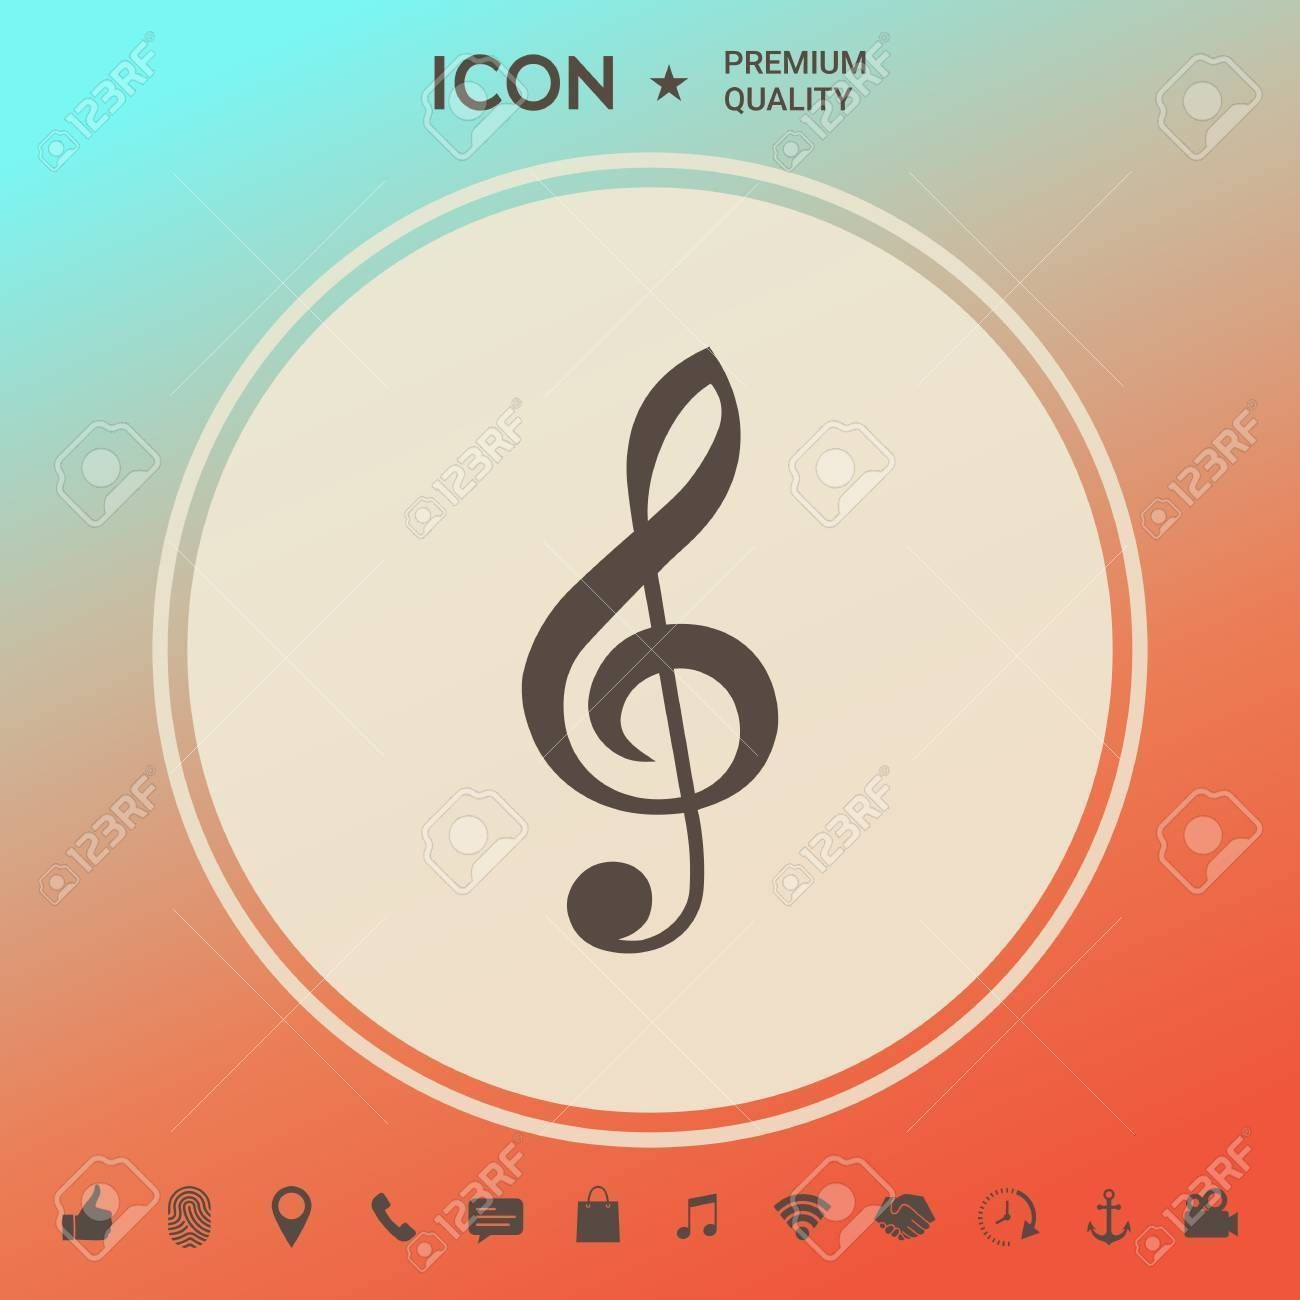 Treble clef icon , #Aff, #Treble, #clef, #icon #trebleclef Treble clef icon , #Aff, #Treble, #clef, #icon #trebleclef Treble clef icon , #Aff, #Treble, #clef, #icon #trebleclef Treble clef icon , #Aff, #Treble, #clef, #icon #trebleclef Treble clef icon , #Aff, #Treble, #clef, #icon #trebleclef Treble clef icon , #Aff, #Treble, #clef, #icon #trebleclef Treble clef icon , #Aff, #Treble, #clef, #icon #trebleclef Treble clef icon , #Aff, #Treble, #clef, #icon #trebleclef Treble clef icon , #Aff, #Tr #trebleclef